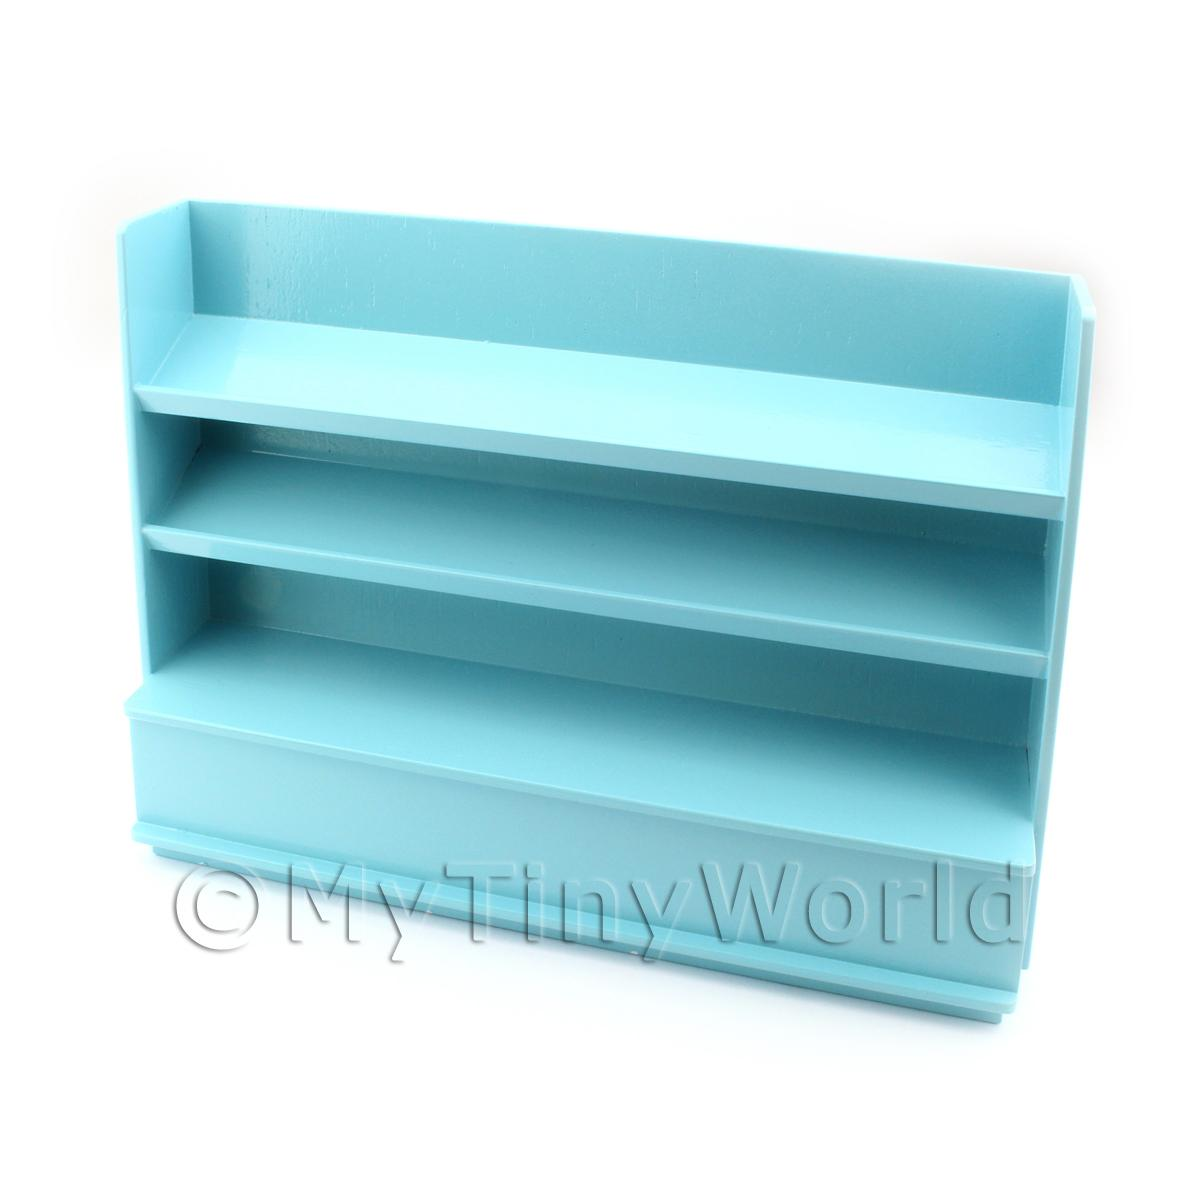 Dolls House Miniature Pale Blue Painted Wood Shelved Shop Display Unit